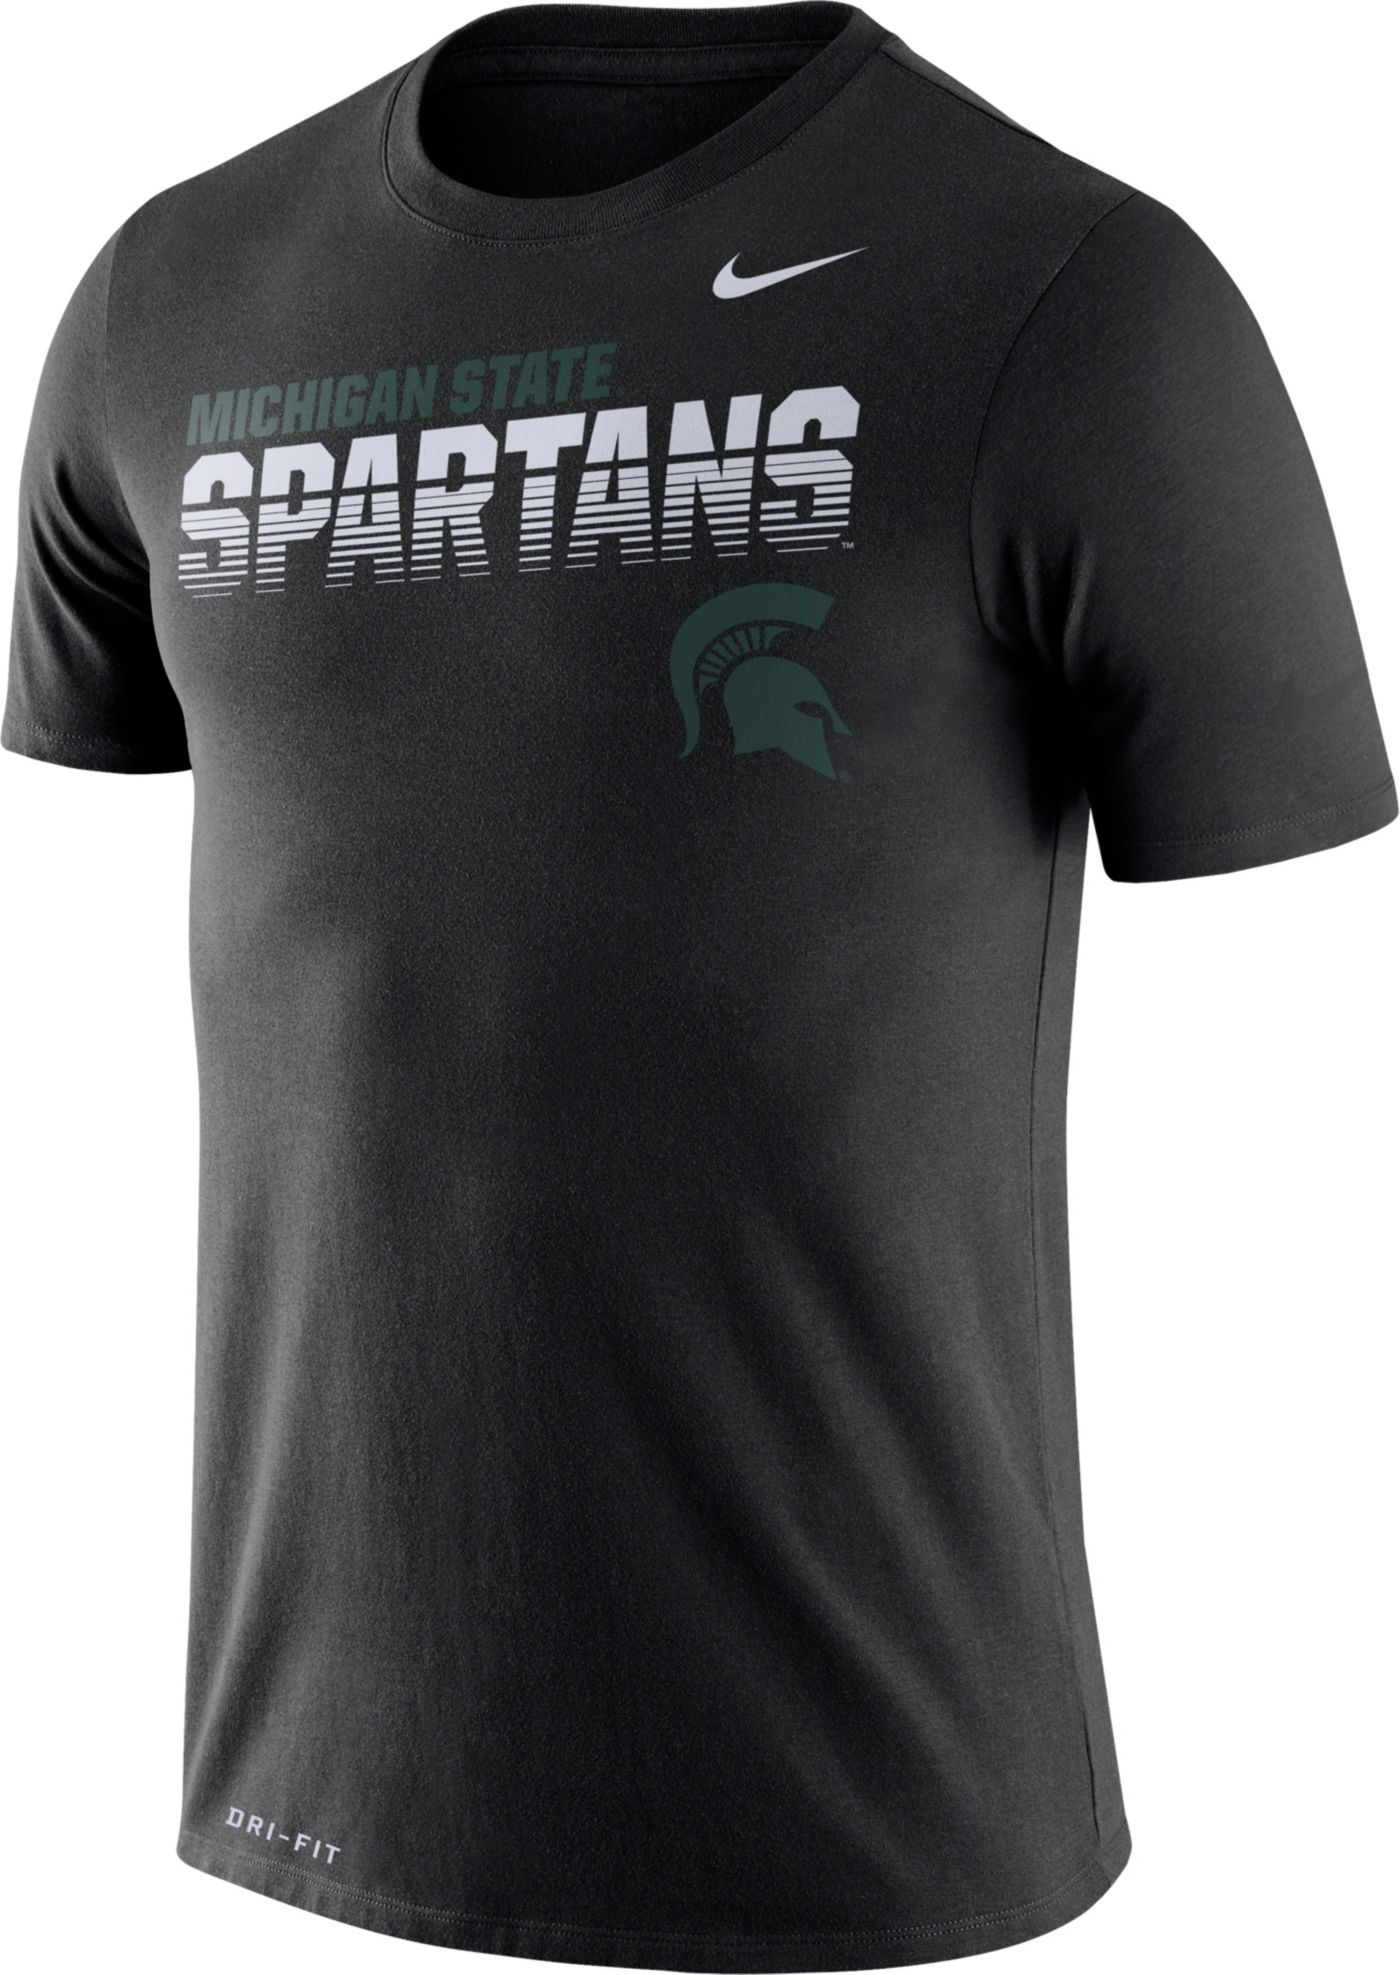 Nike Men's Michigan State Spartans Legend Football Sideline Black T-Shirt